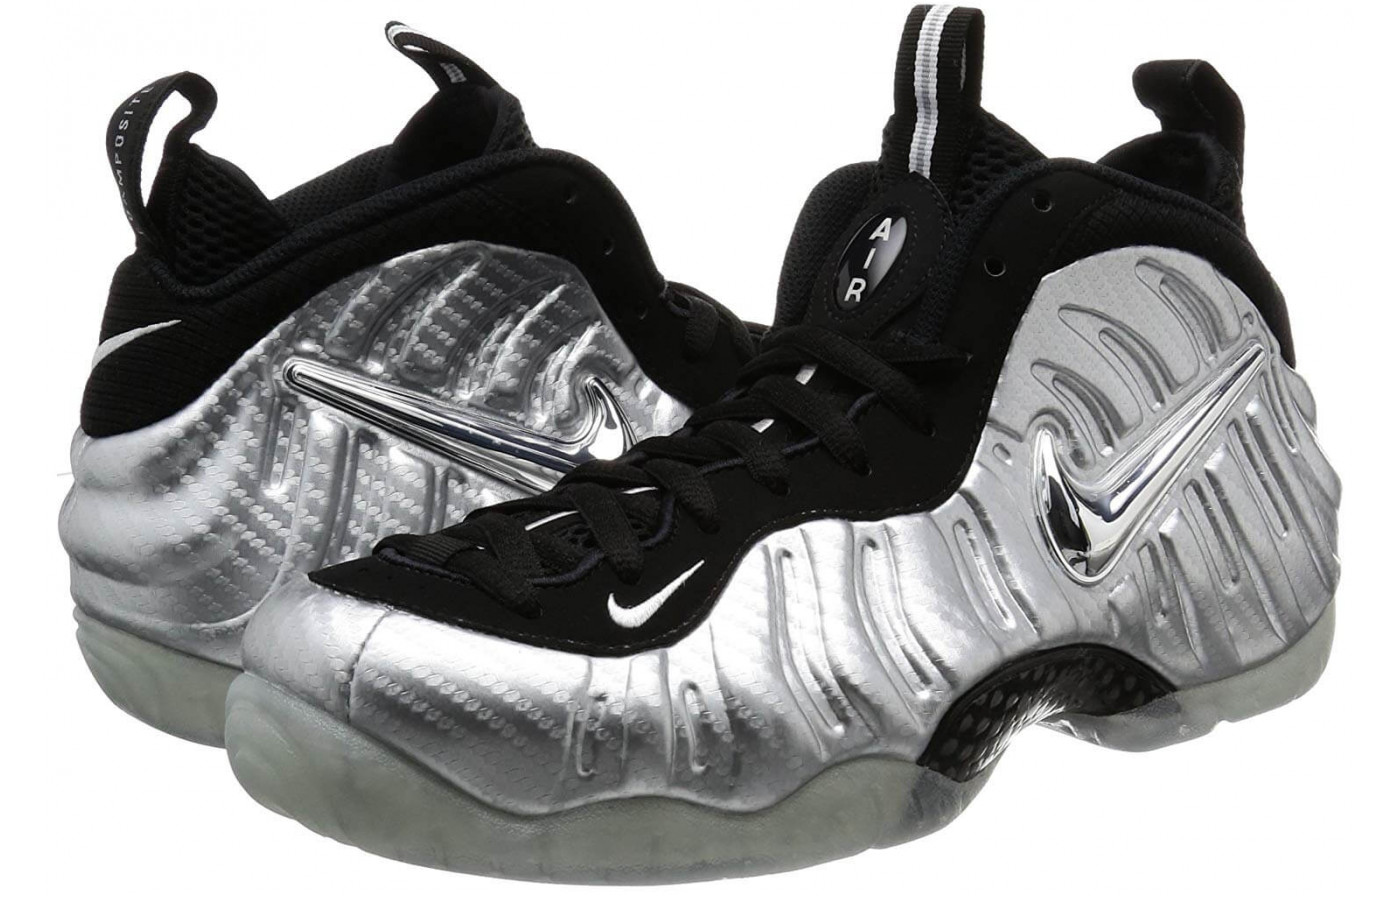 bbbdf149ff3c Nike Air Foamposite Pro - To Buy or Not in Apr 2019